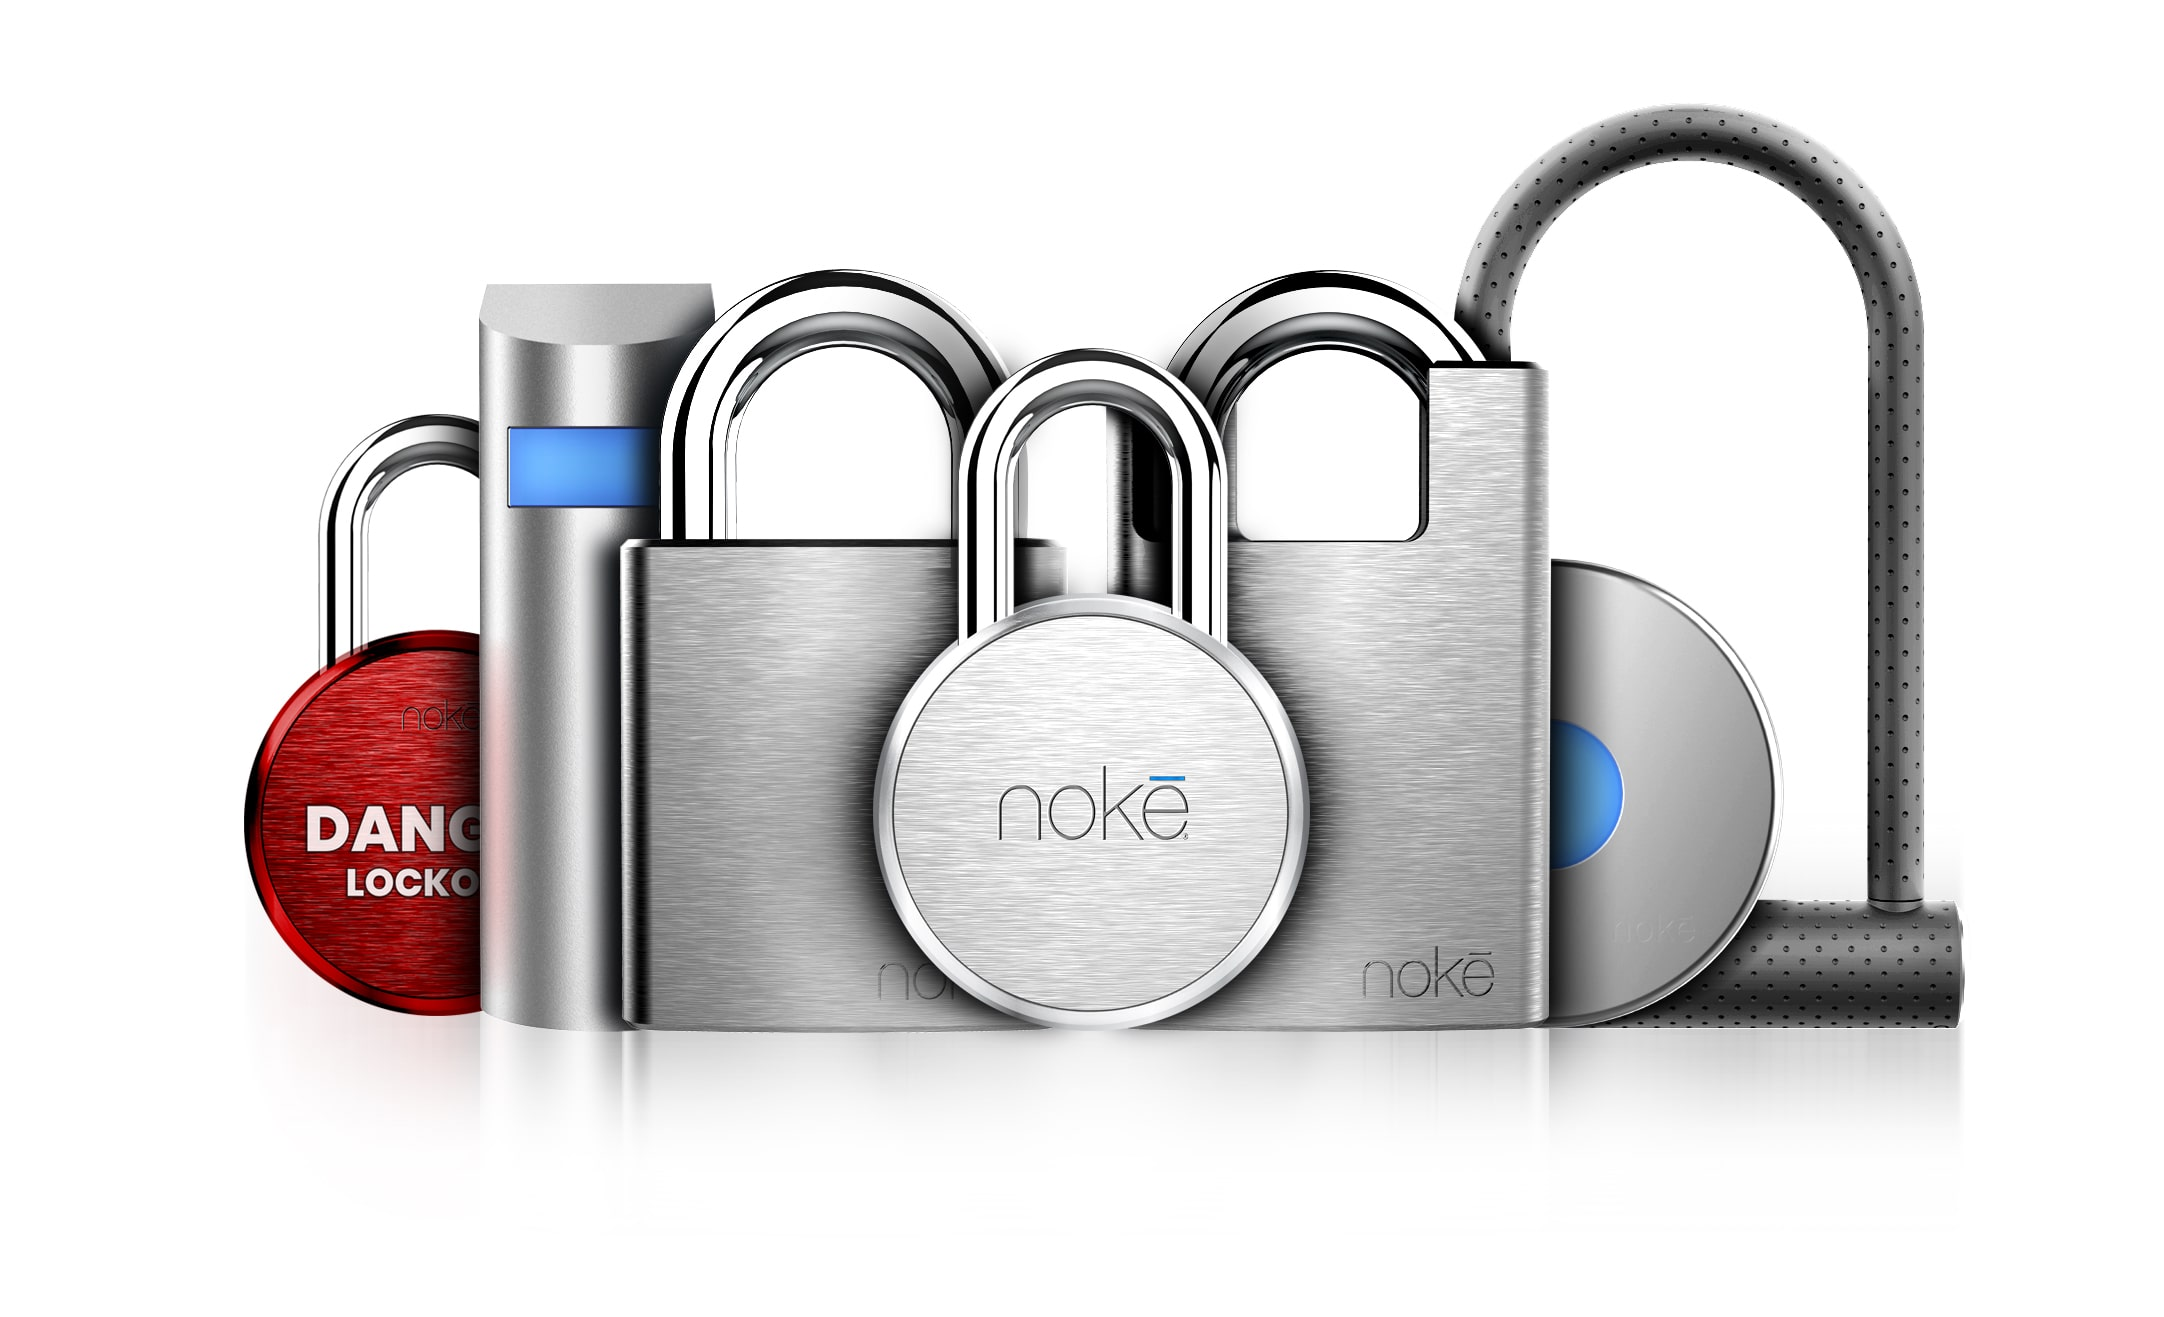 Nokē Bluetooth padlock, door lock, U-Lock